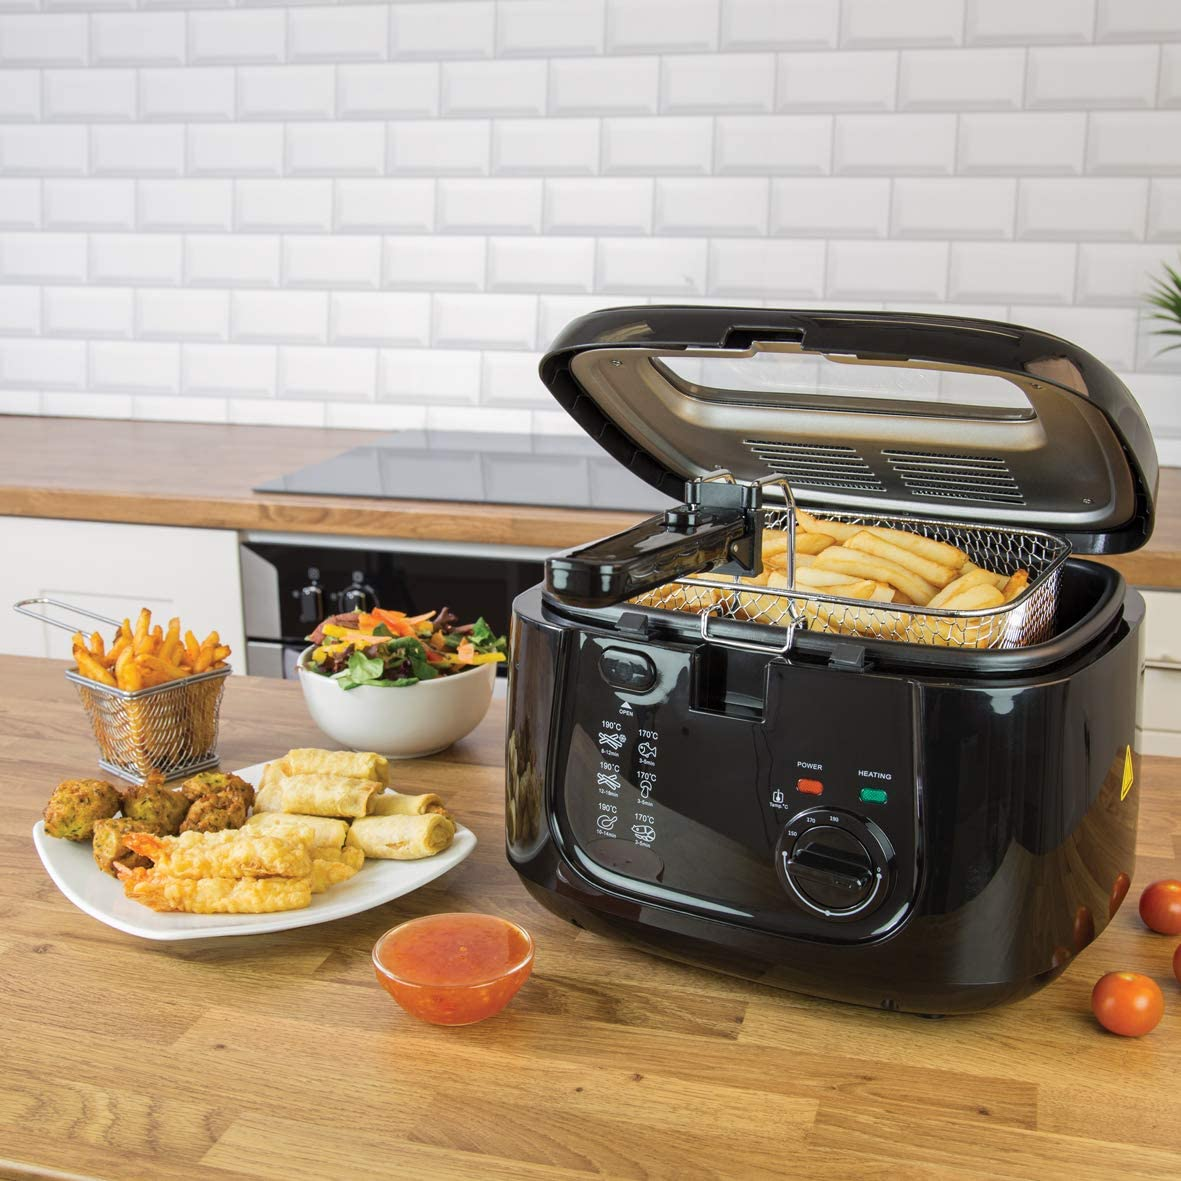 Quest 35239 Deep Fat Fryer with Viewing Window 2.5 Litre 1800W Black Black